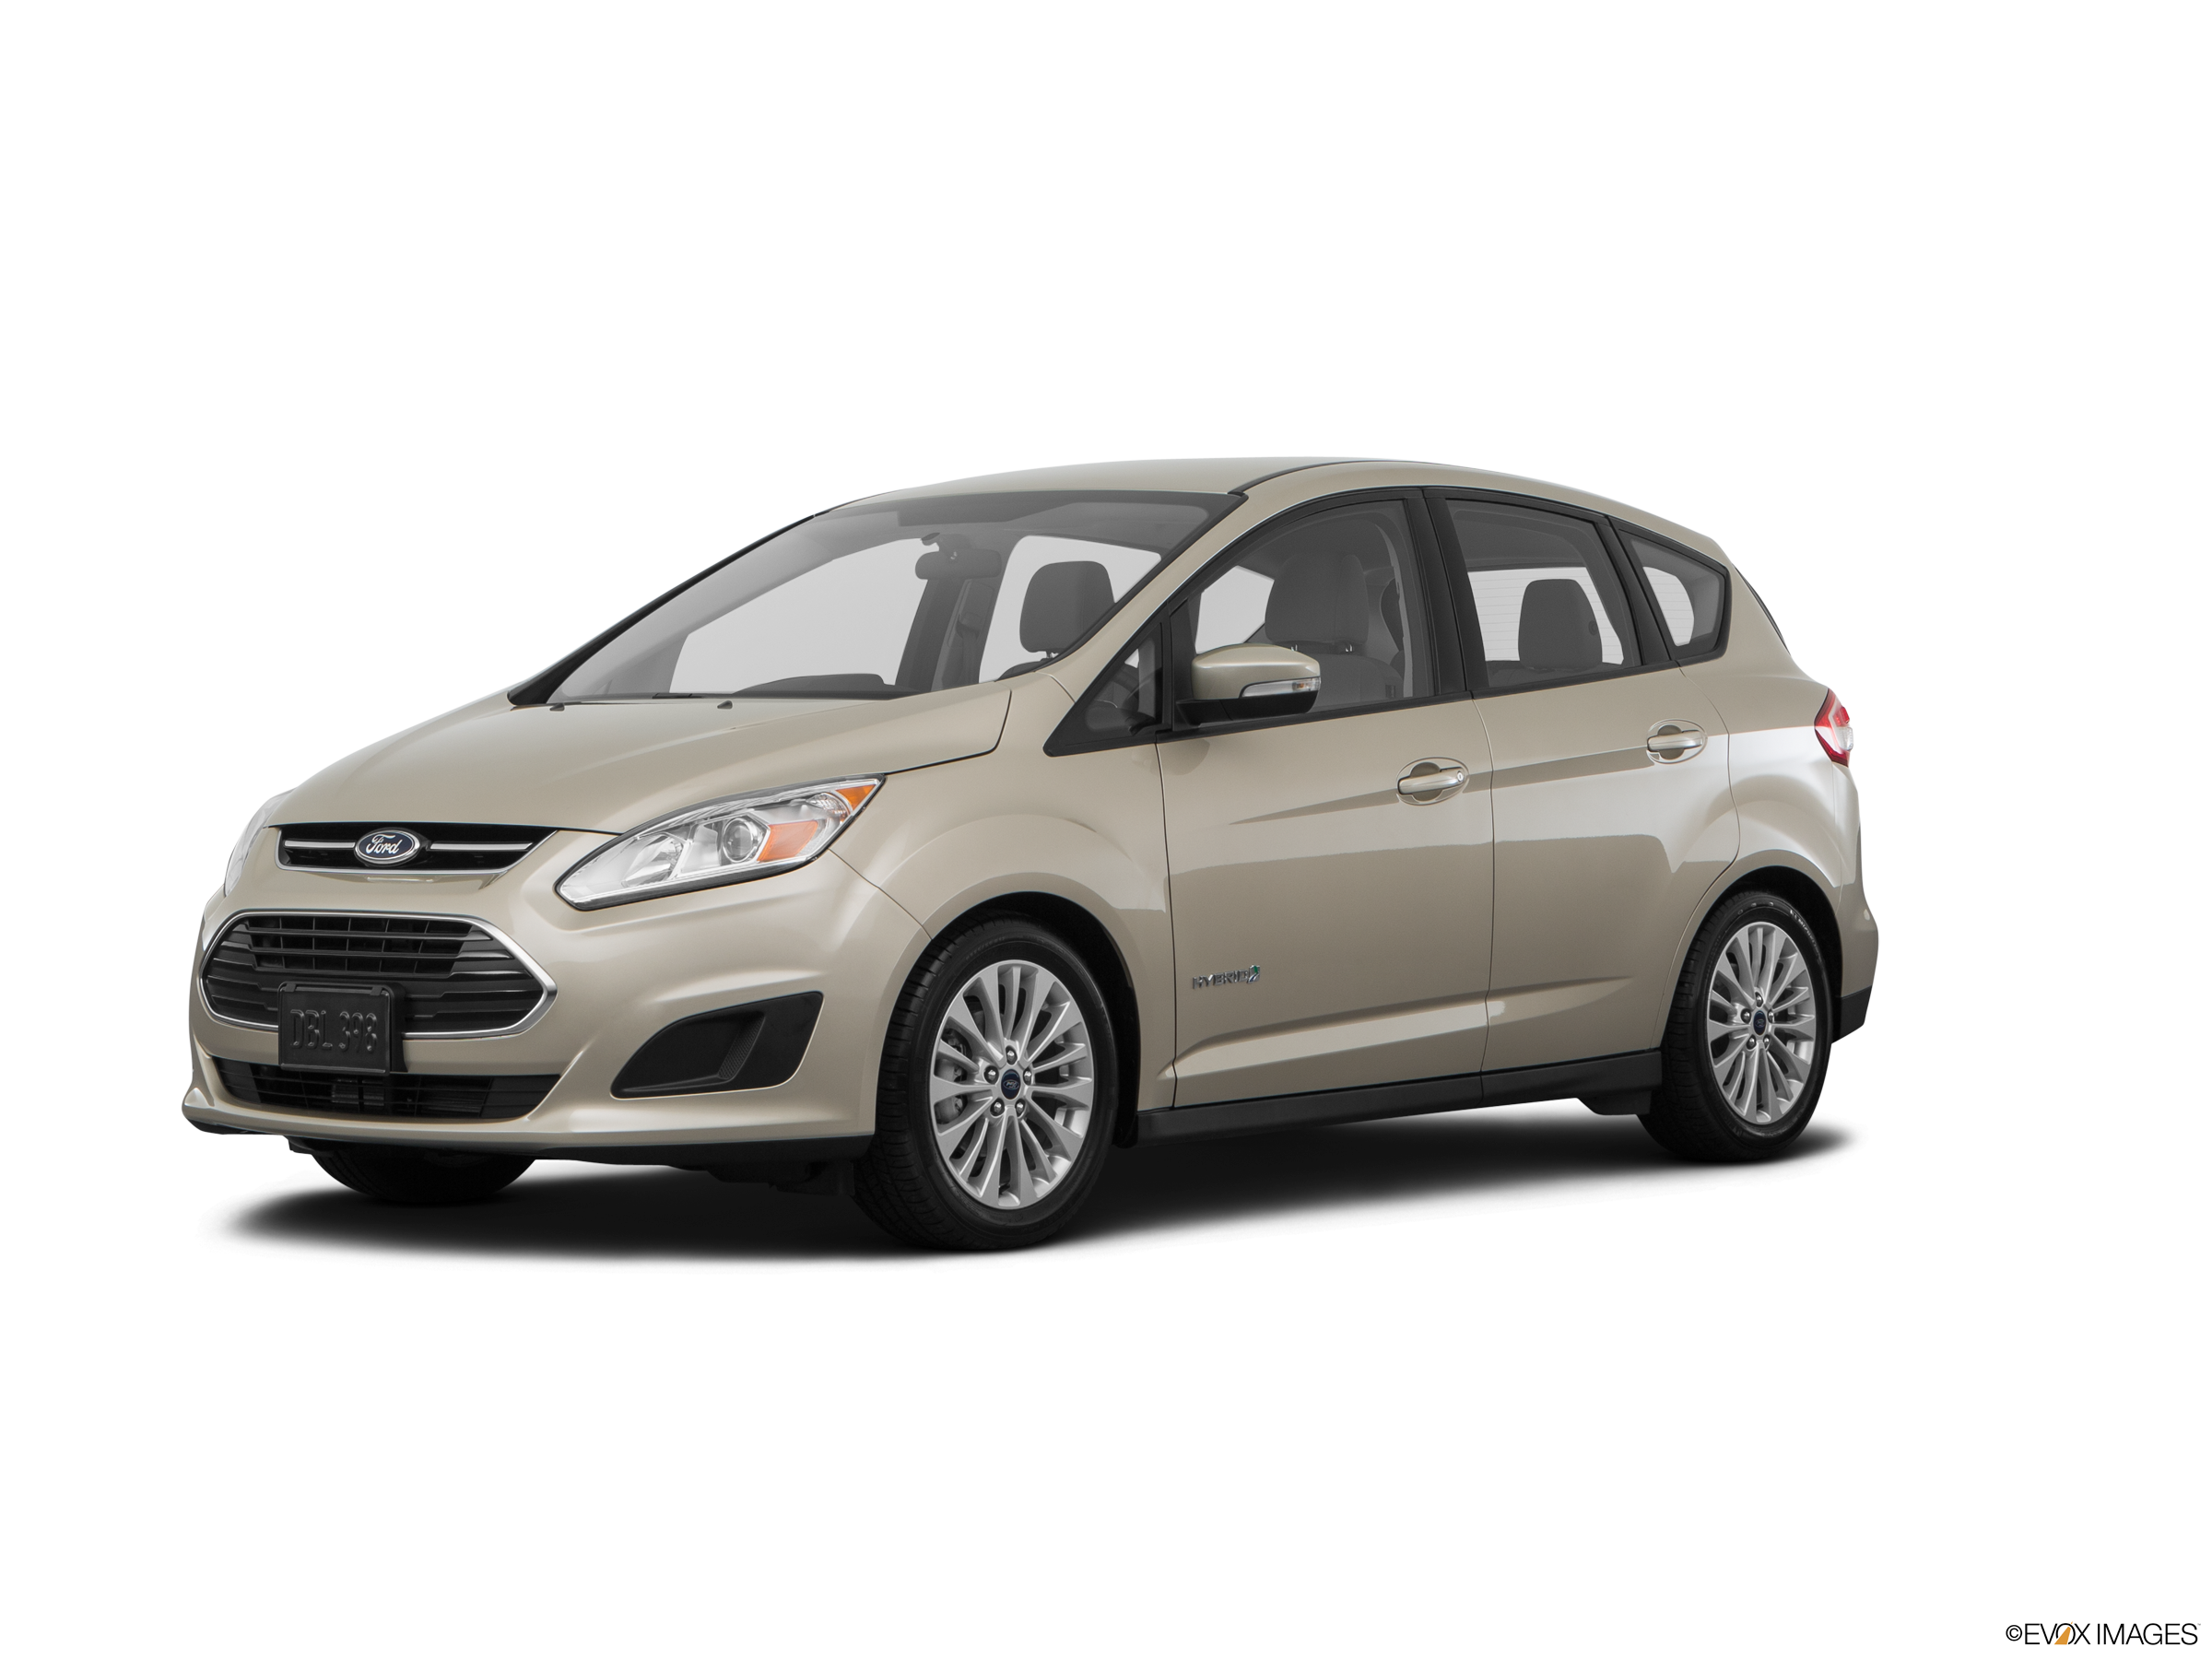 Most Popular Wagons of 2018 - 2018 Ford C-MAX Hybrid